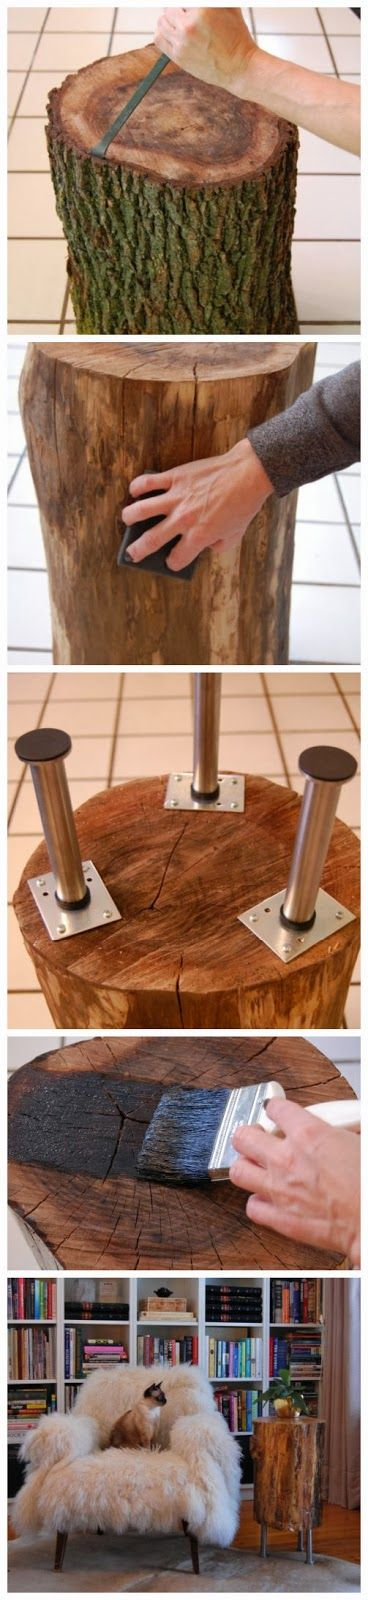 How to Make a Tree Stump Table - really like this & I think it wants to be next to my mantle! #pin_it #diy #sustentabilidade @mundodascasas See more here: www.mundodascasas.com.br